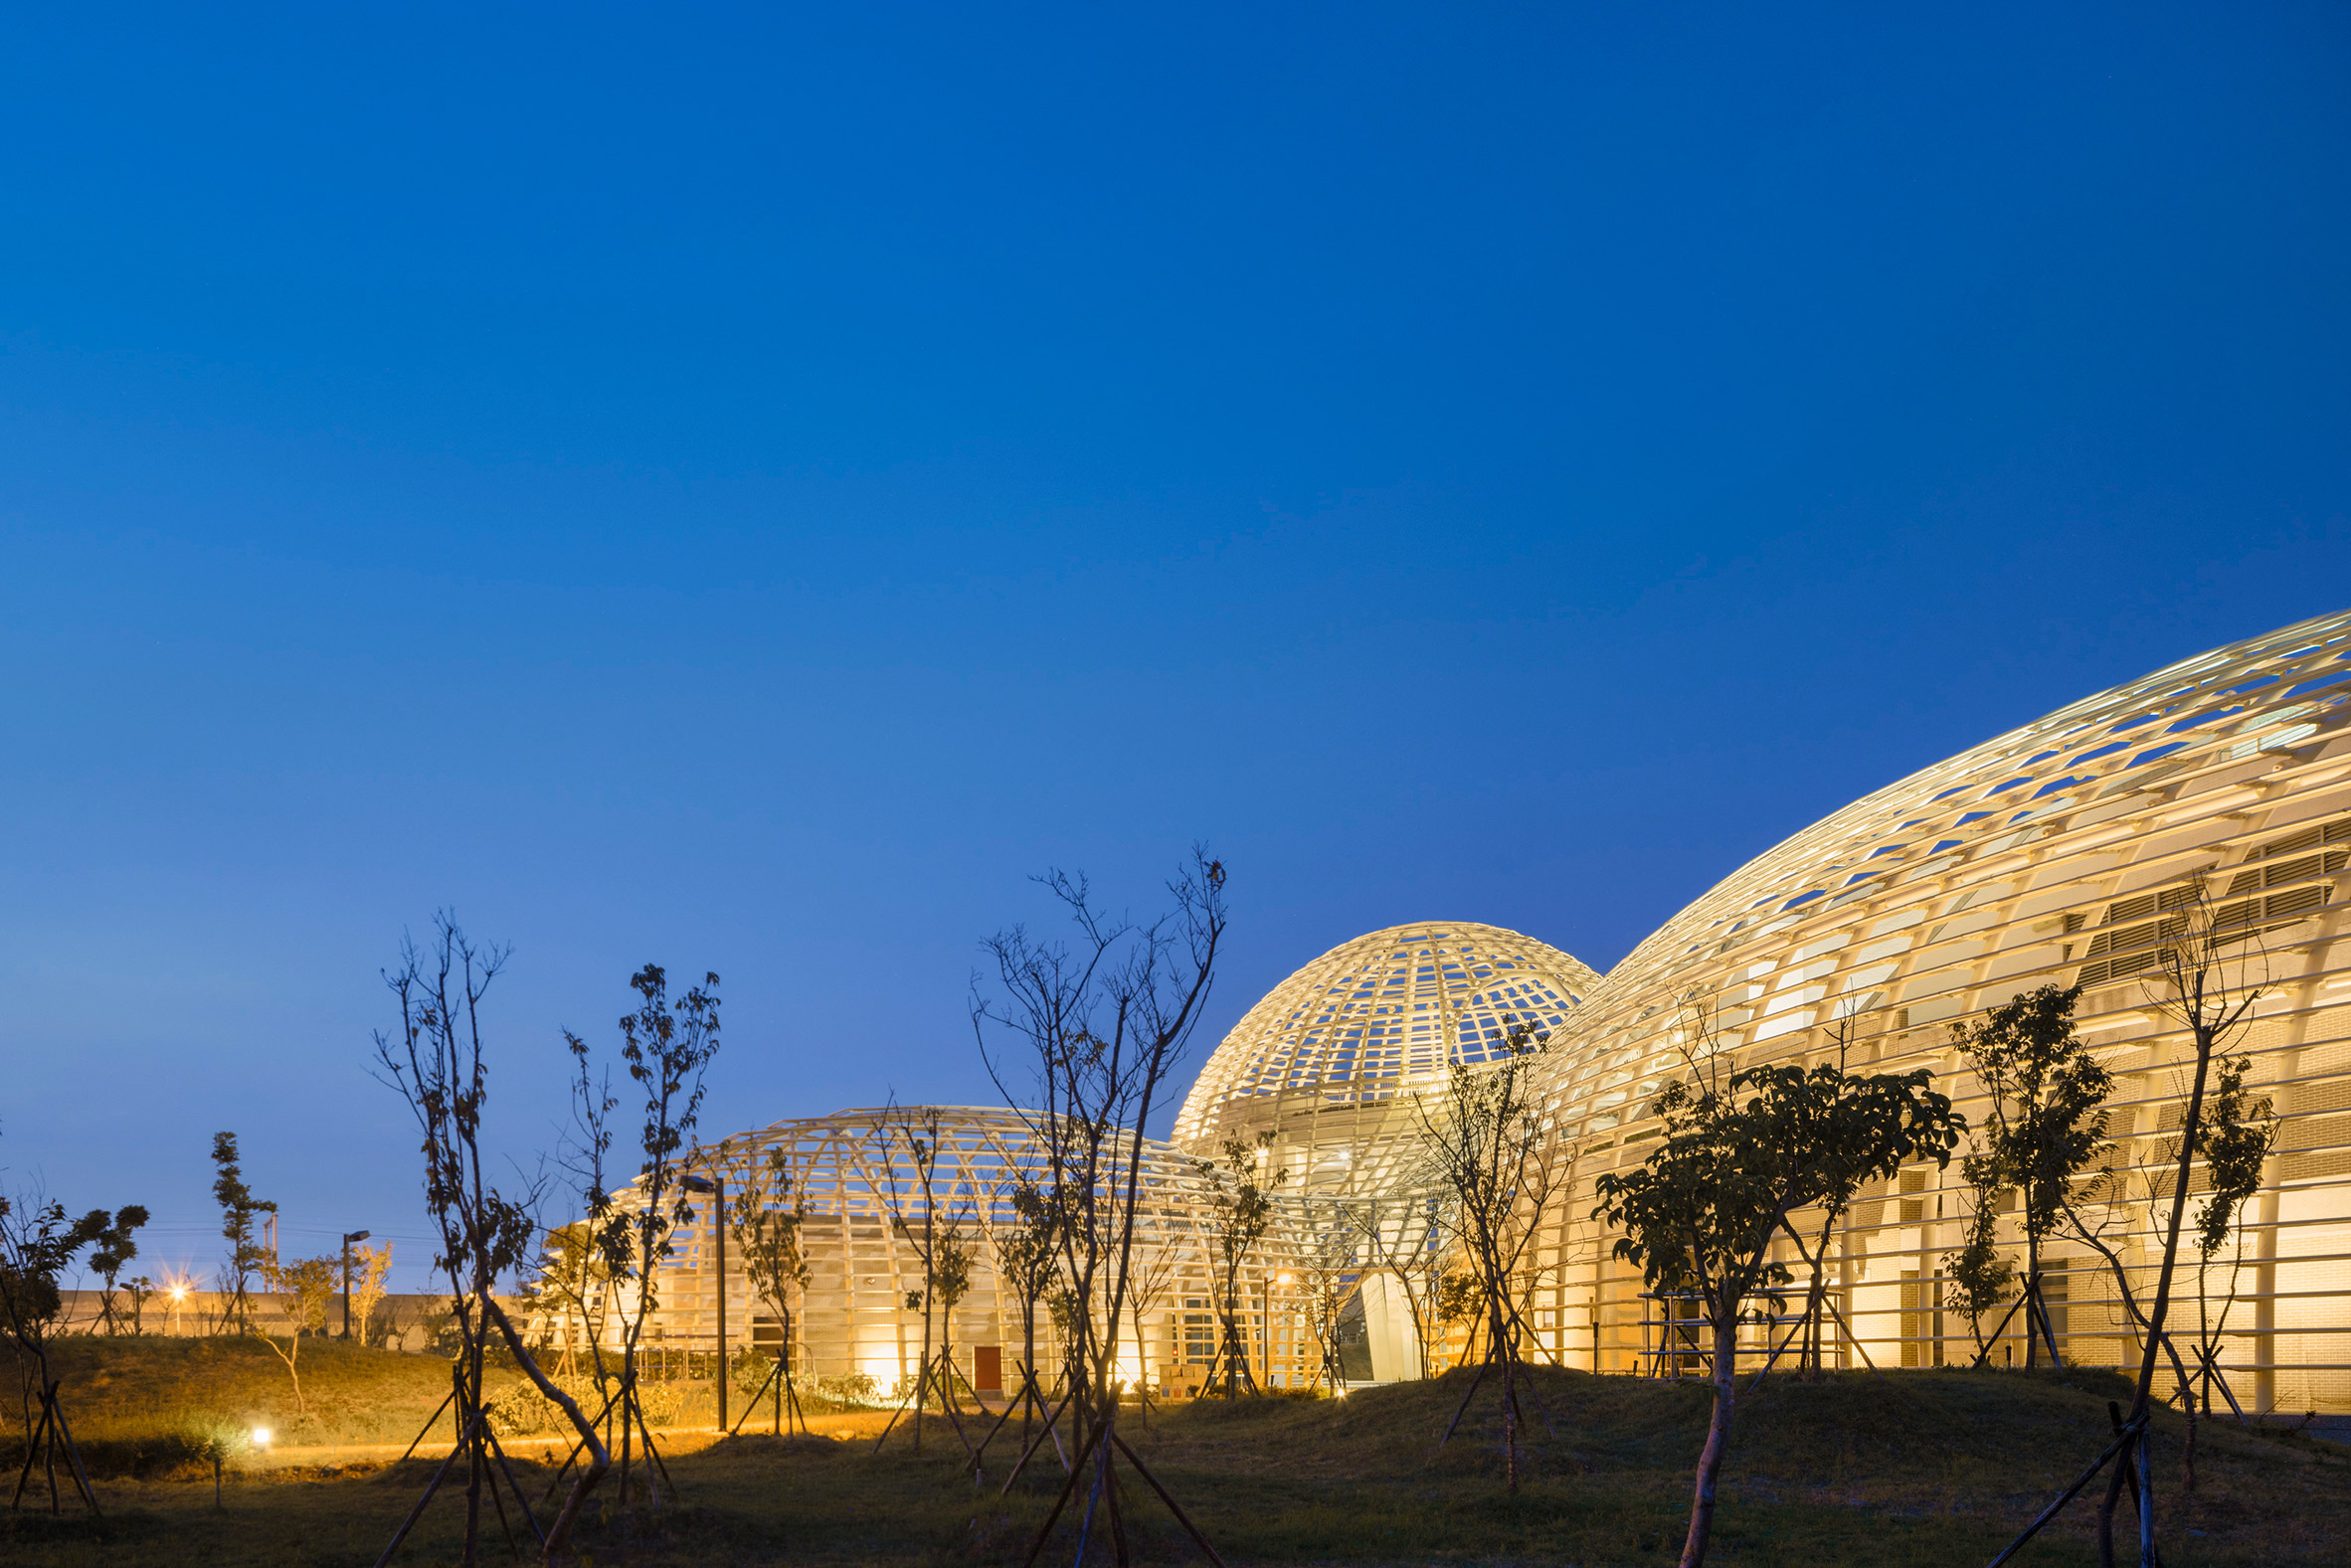 3_taoyuan-sewage-treatment-project-habitech-architects-taiwan-architecture_dezeen_2364_col_6.jpg